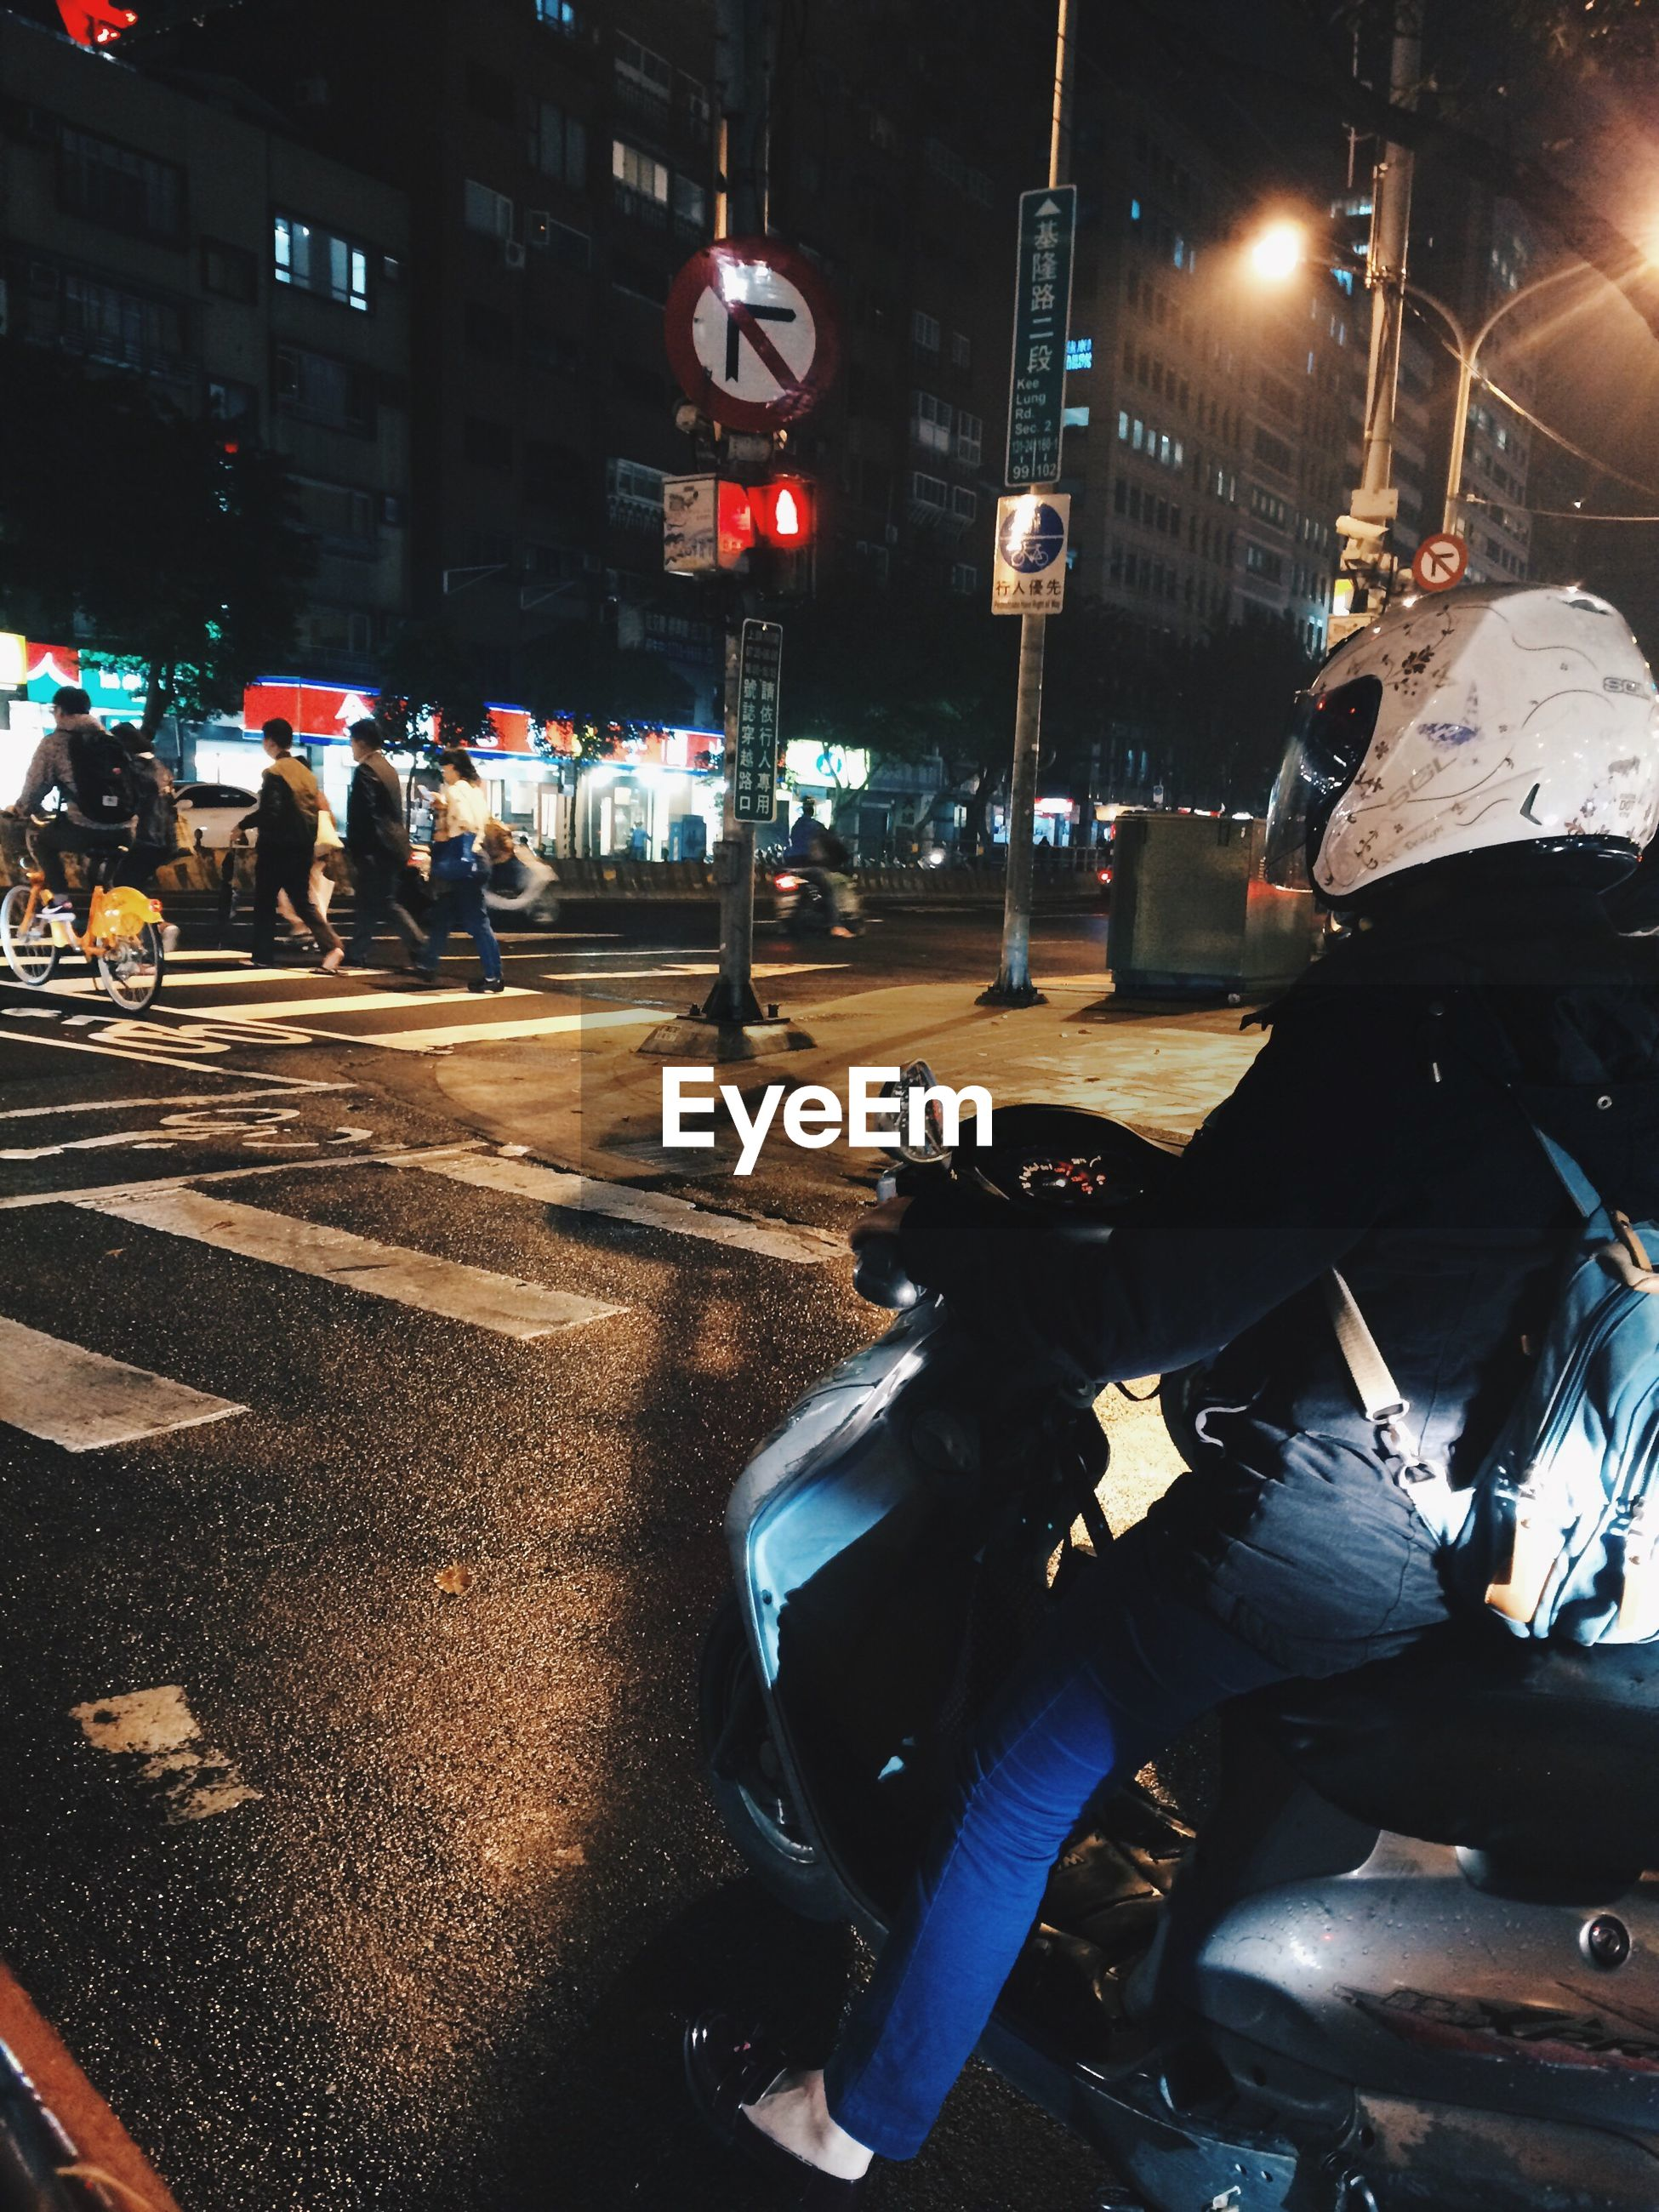 Woman riding motor scooter on city street at night